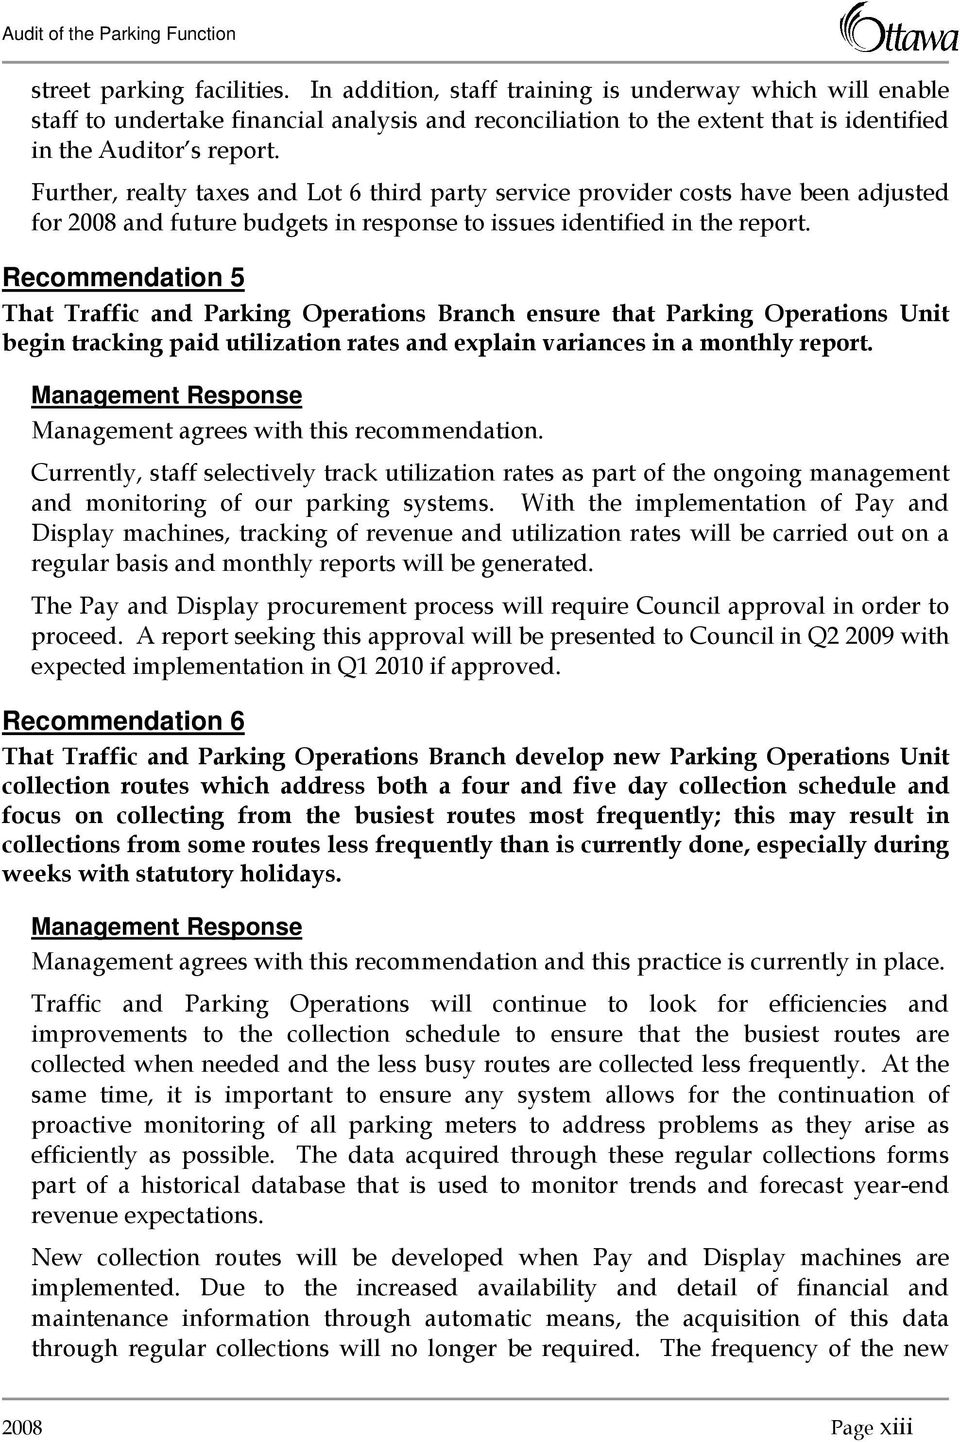 Recommendation 5 That Traffic and Parking Operations Branch ensure that Parking Operations Unit begin tracking paid utilization rates and explain variances in a monthly report.